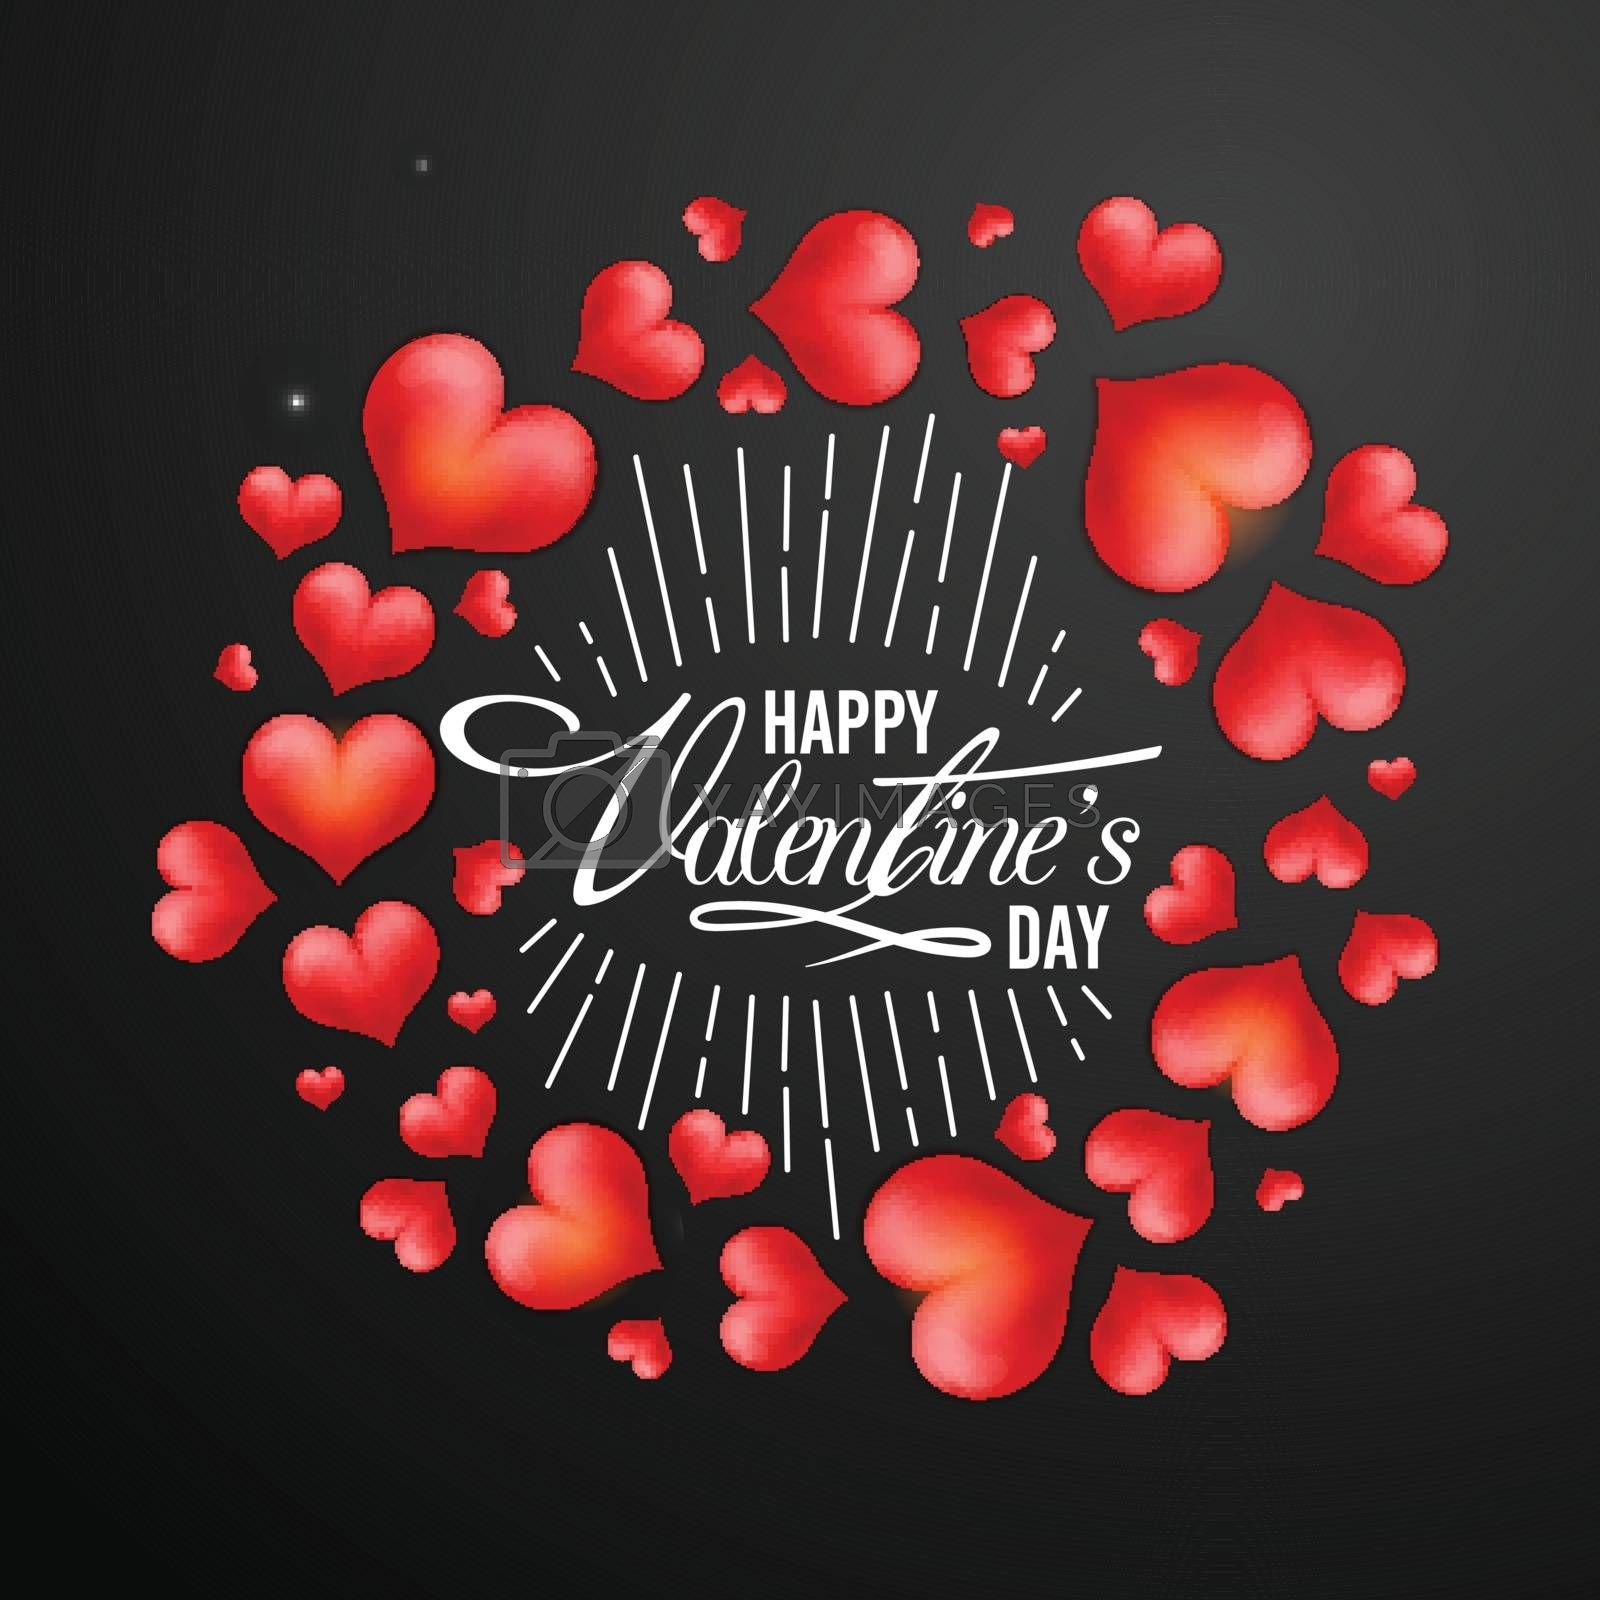 Glossy elegant Red Hearts decorated beautiful greeting card for Happy Valentine's Day Celebration.